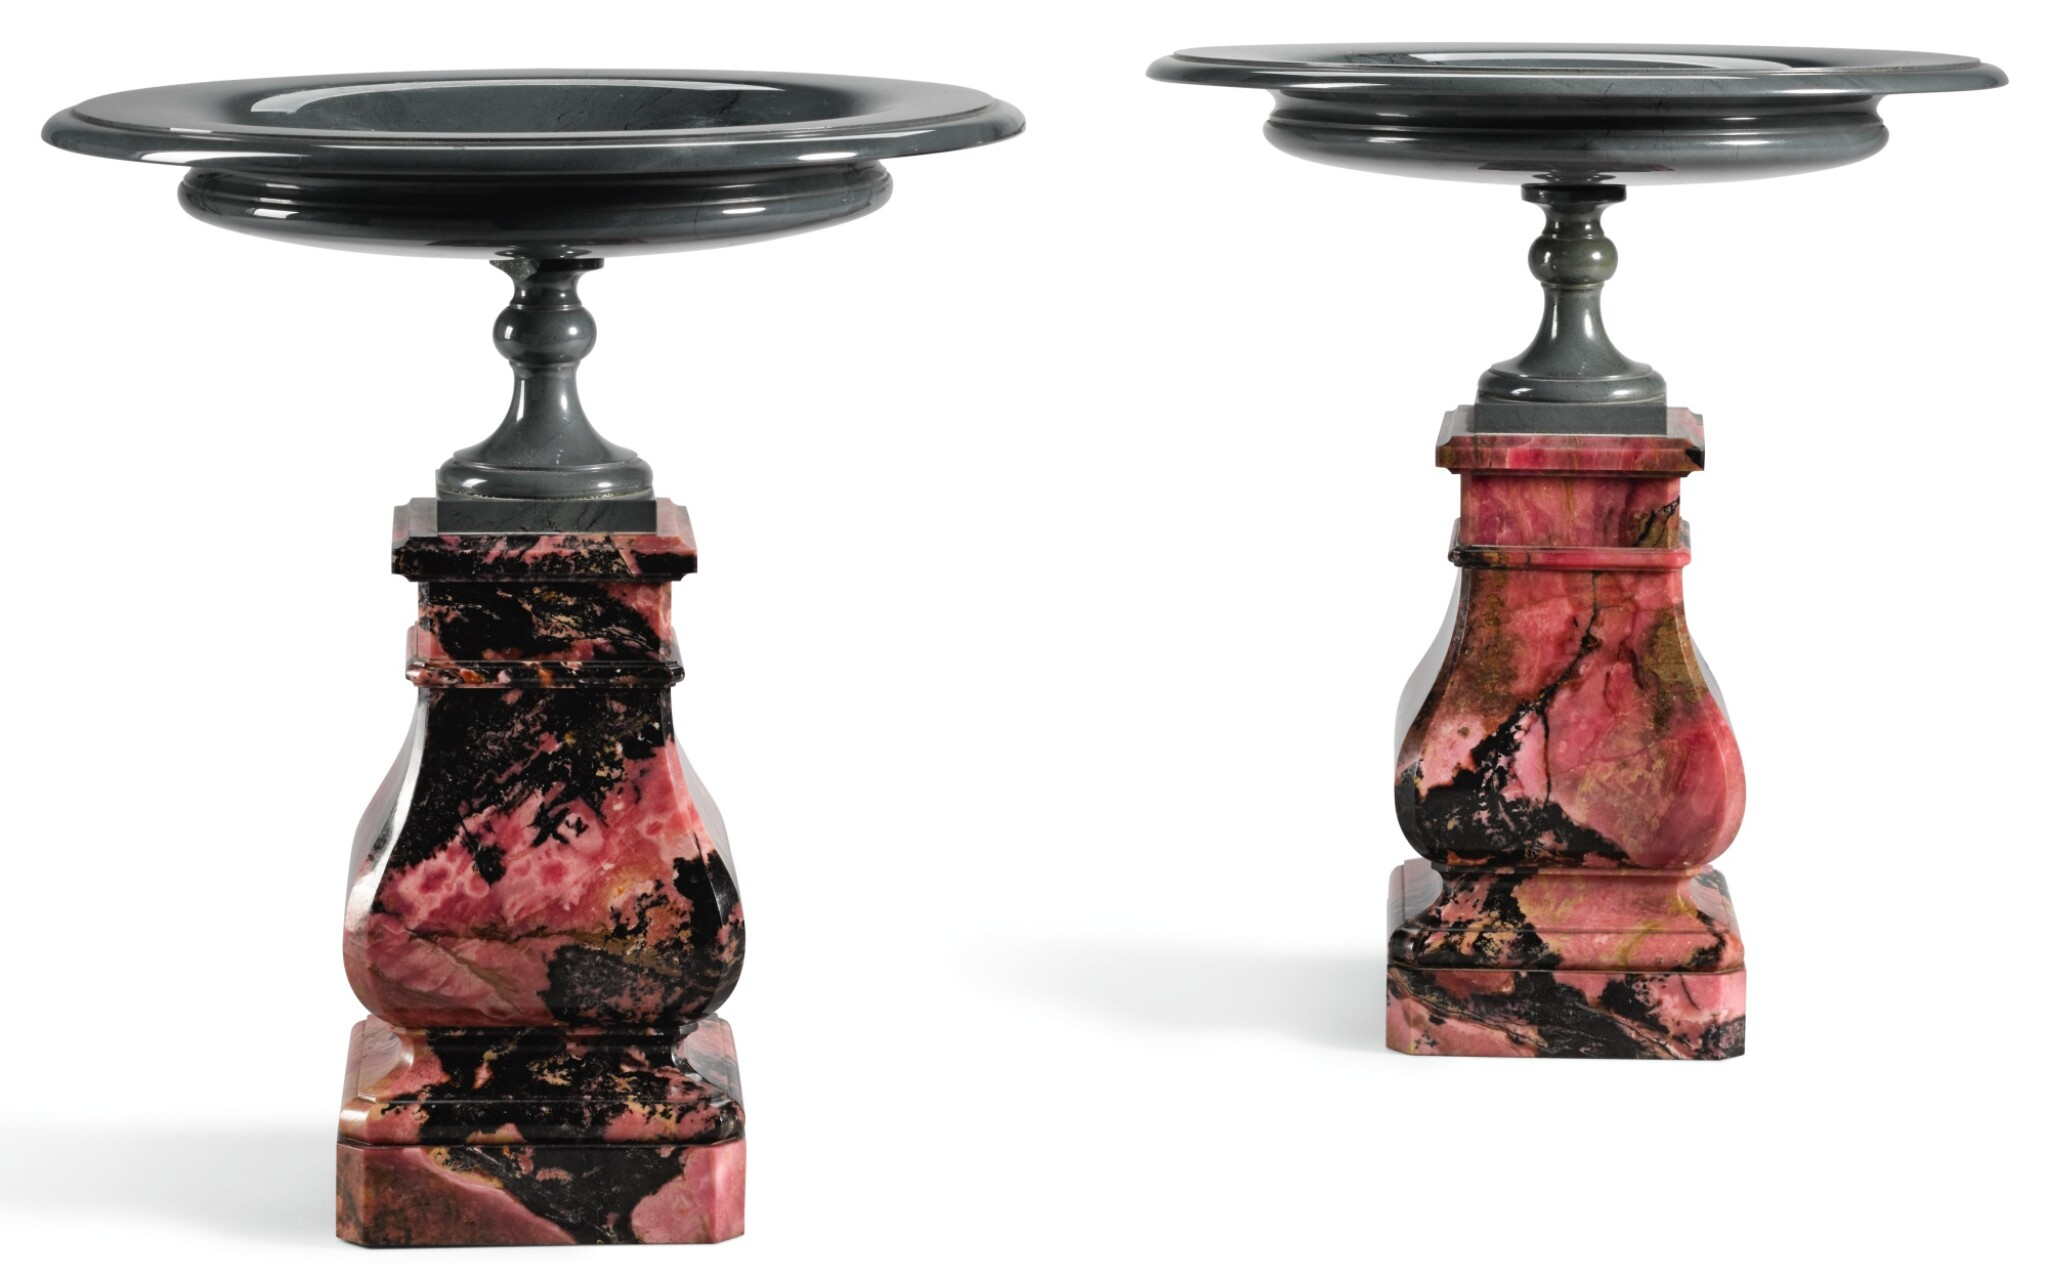 A PAIR OF RUSSIAN ORLETZ RHODONITE AND KALGAN JASPER TAZZE ON PEDESTALS CIRCA 1860, BY THE EKATERINBURG IMPERIAL LAPIDARY WORKS